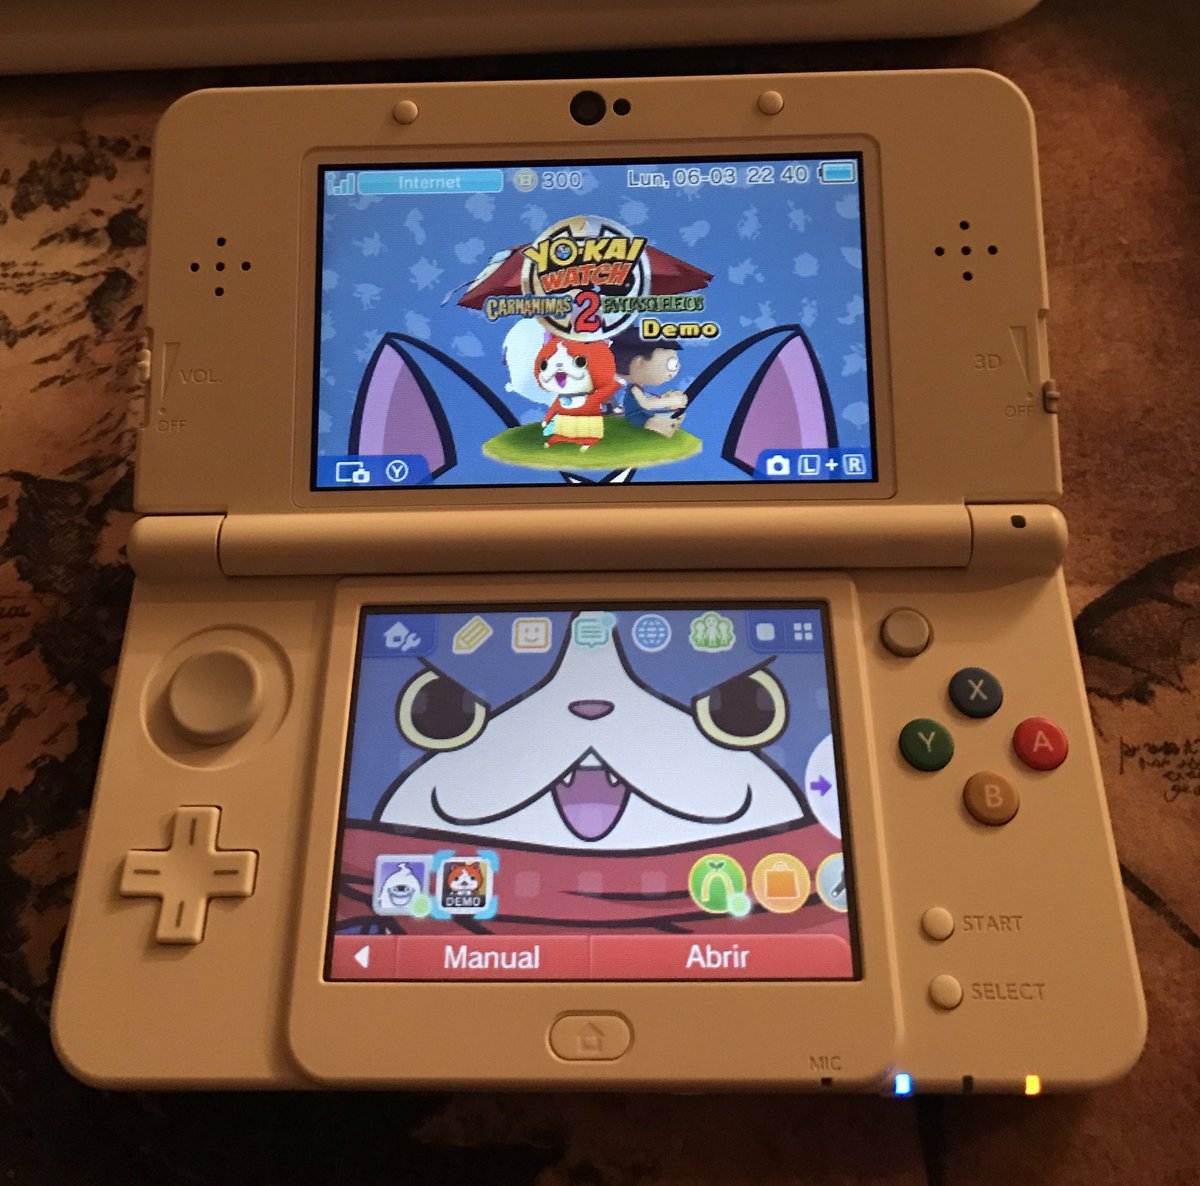 Ho yo kai watch 2 fantasqueletos yo kai watch 2 for Chambre yo kai watch